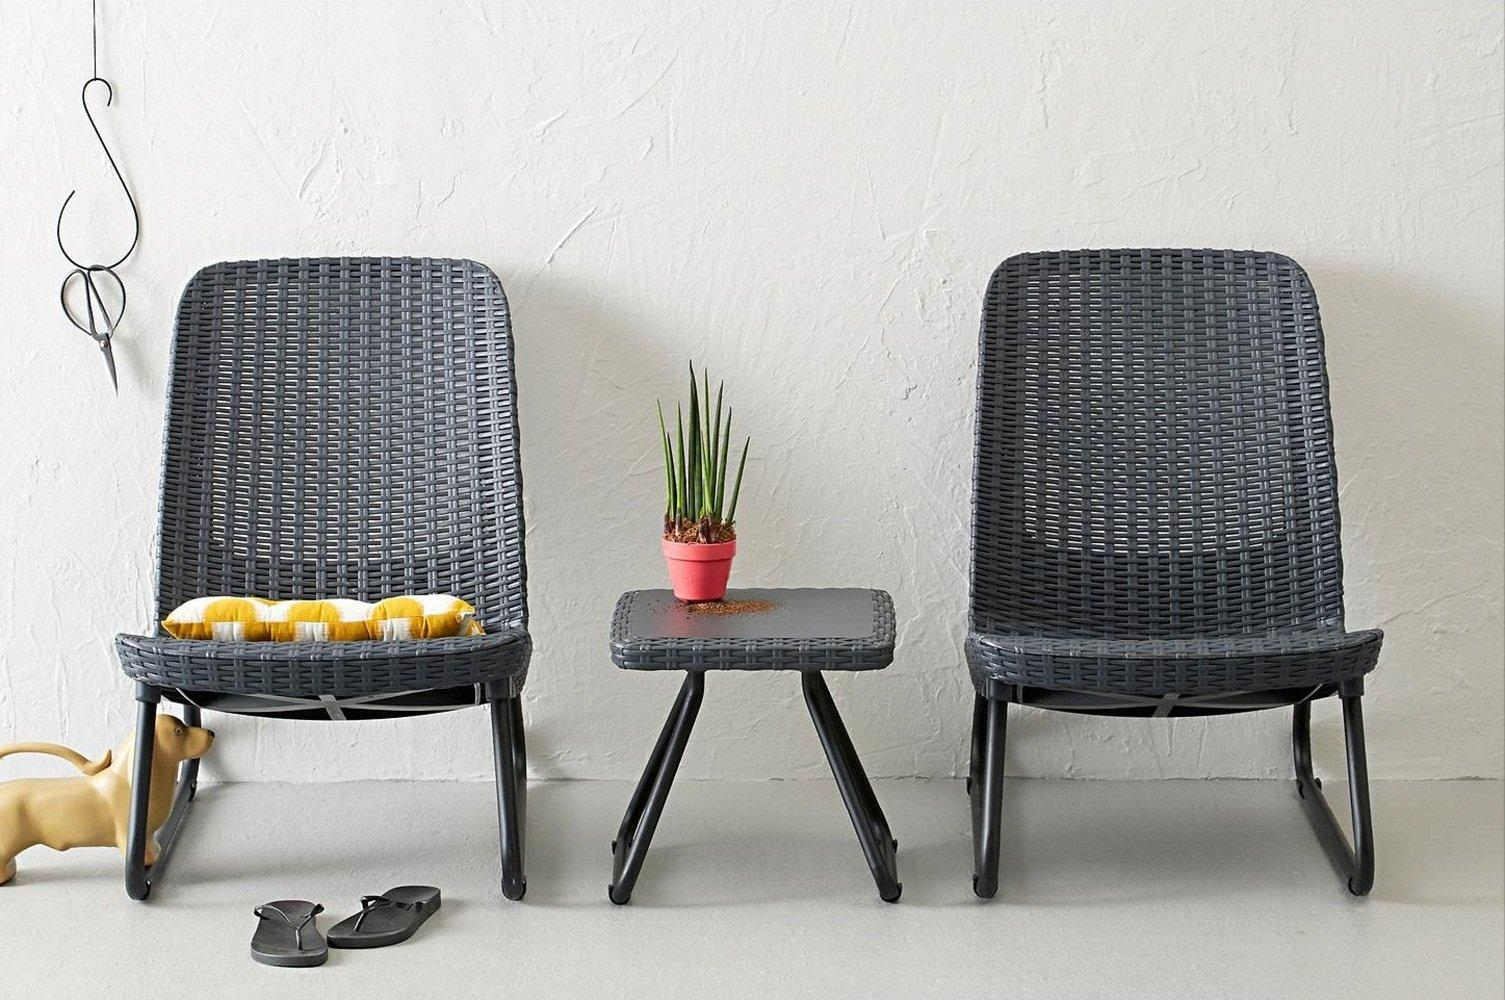 Amazon.com: Keter Rio 3 Pc All Weather Outdoor Patio